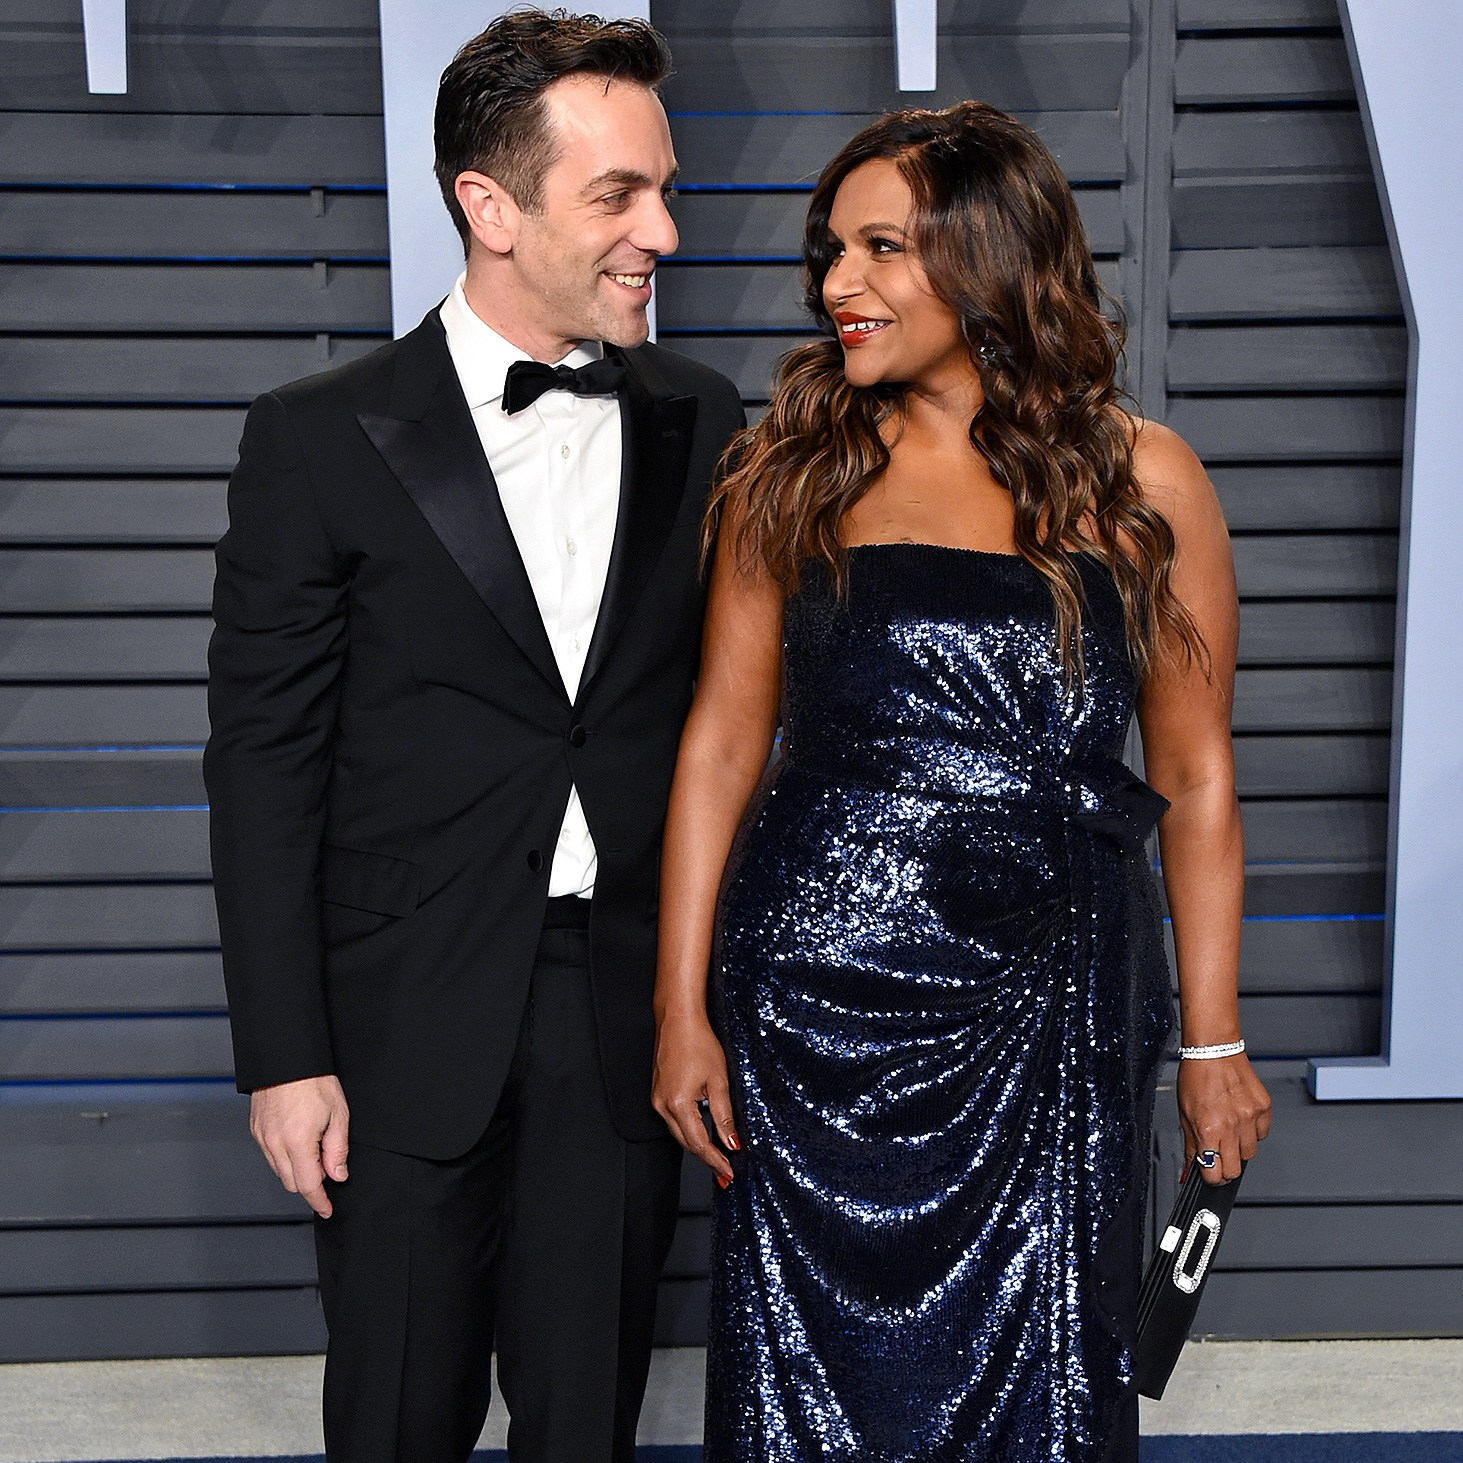 BJ Novak, Mindy Kaling, Twitter, A Wrinkle in Time, 2018 Vanity Fair Oscar Party